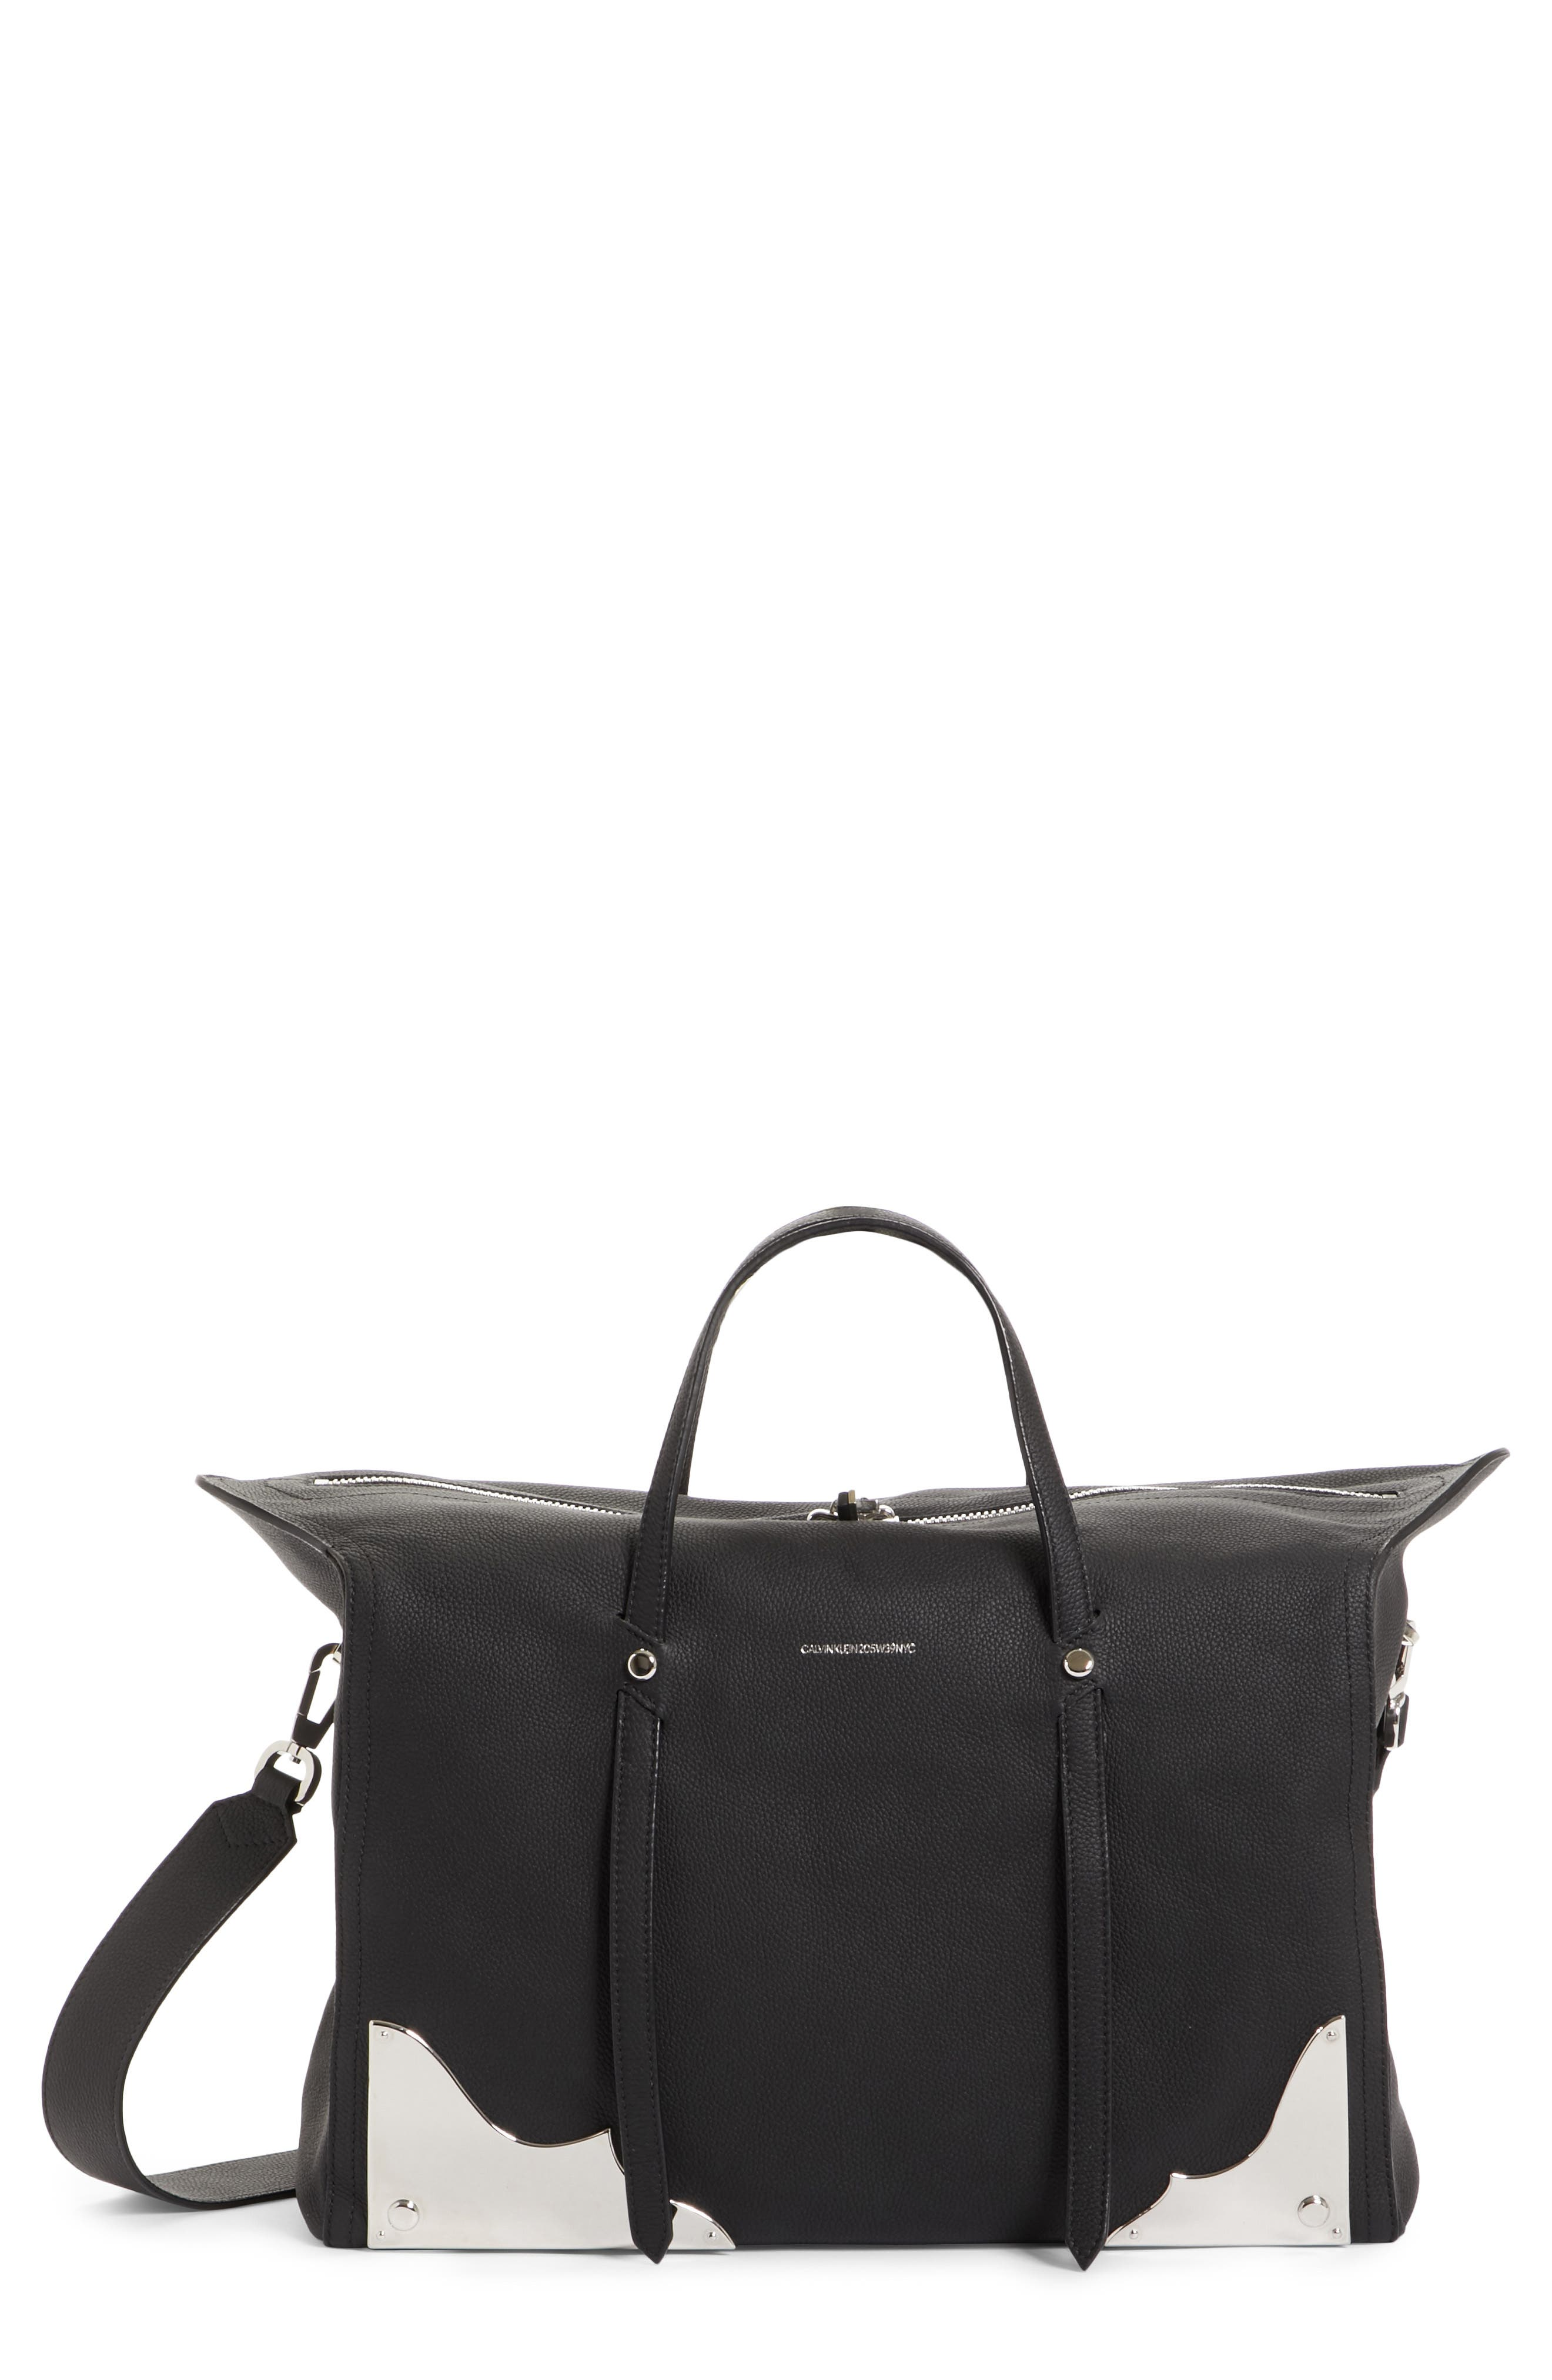 Alternate Image 1 Selected - Calvin Klein 205W395NYC Medium Calfskin Satchel